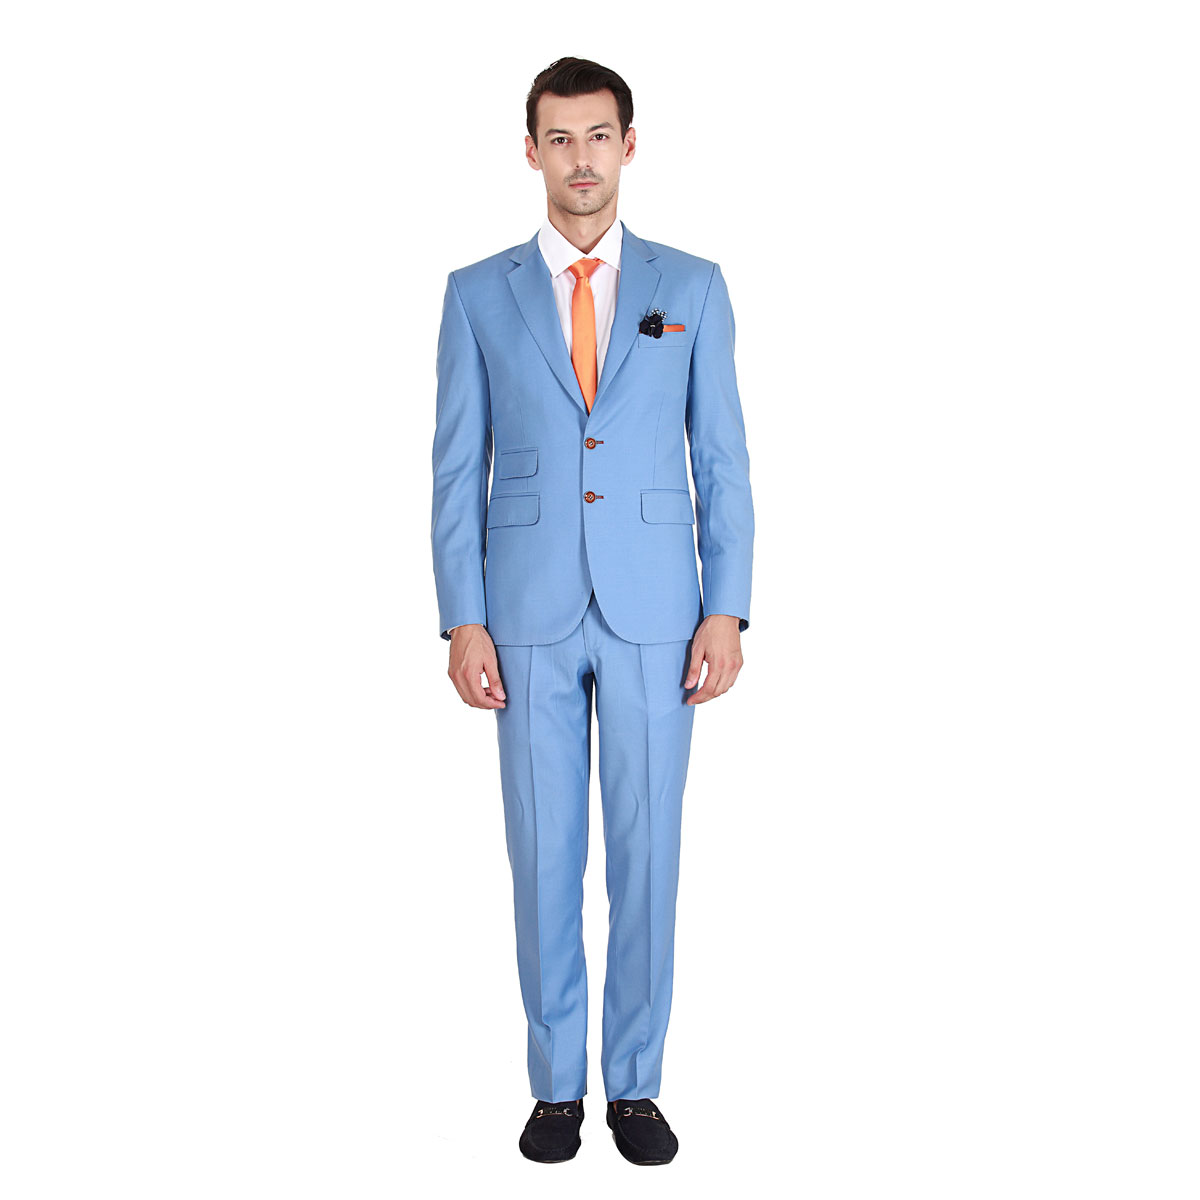 Men's Sky Blue Suit - Premium Bespoke Suits Online. Men's Clothing ...